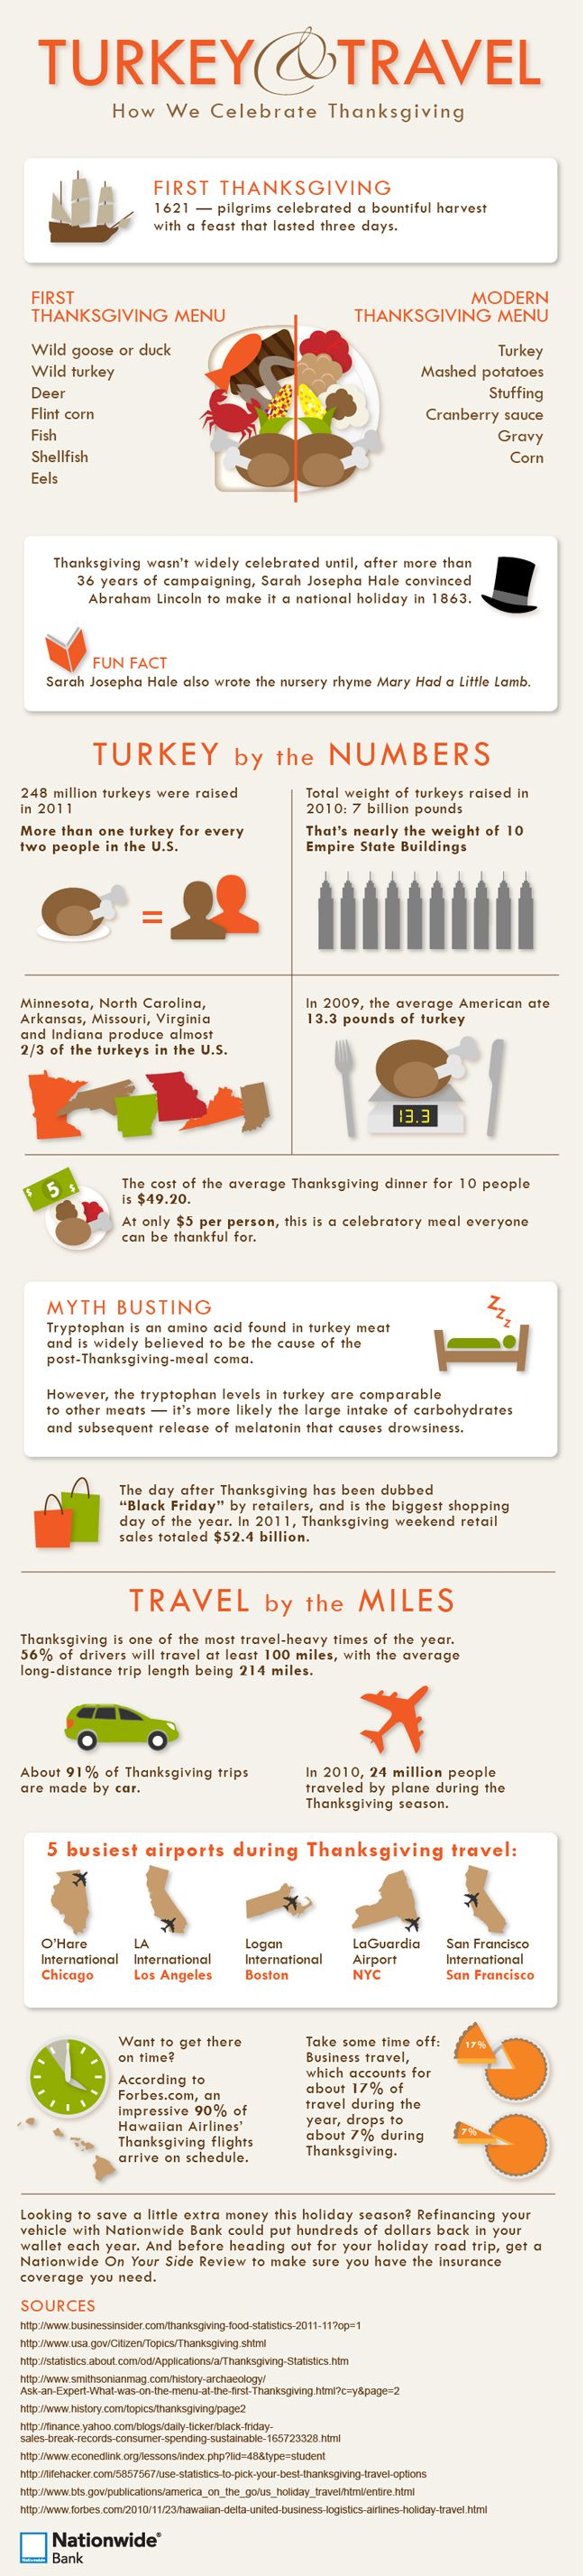 Fun facts and statistics – Turkey & Travel - Infographic | The Momiverse | Celebration of Thanksgiving